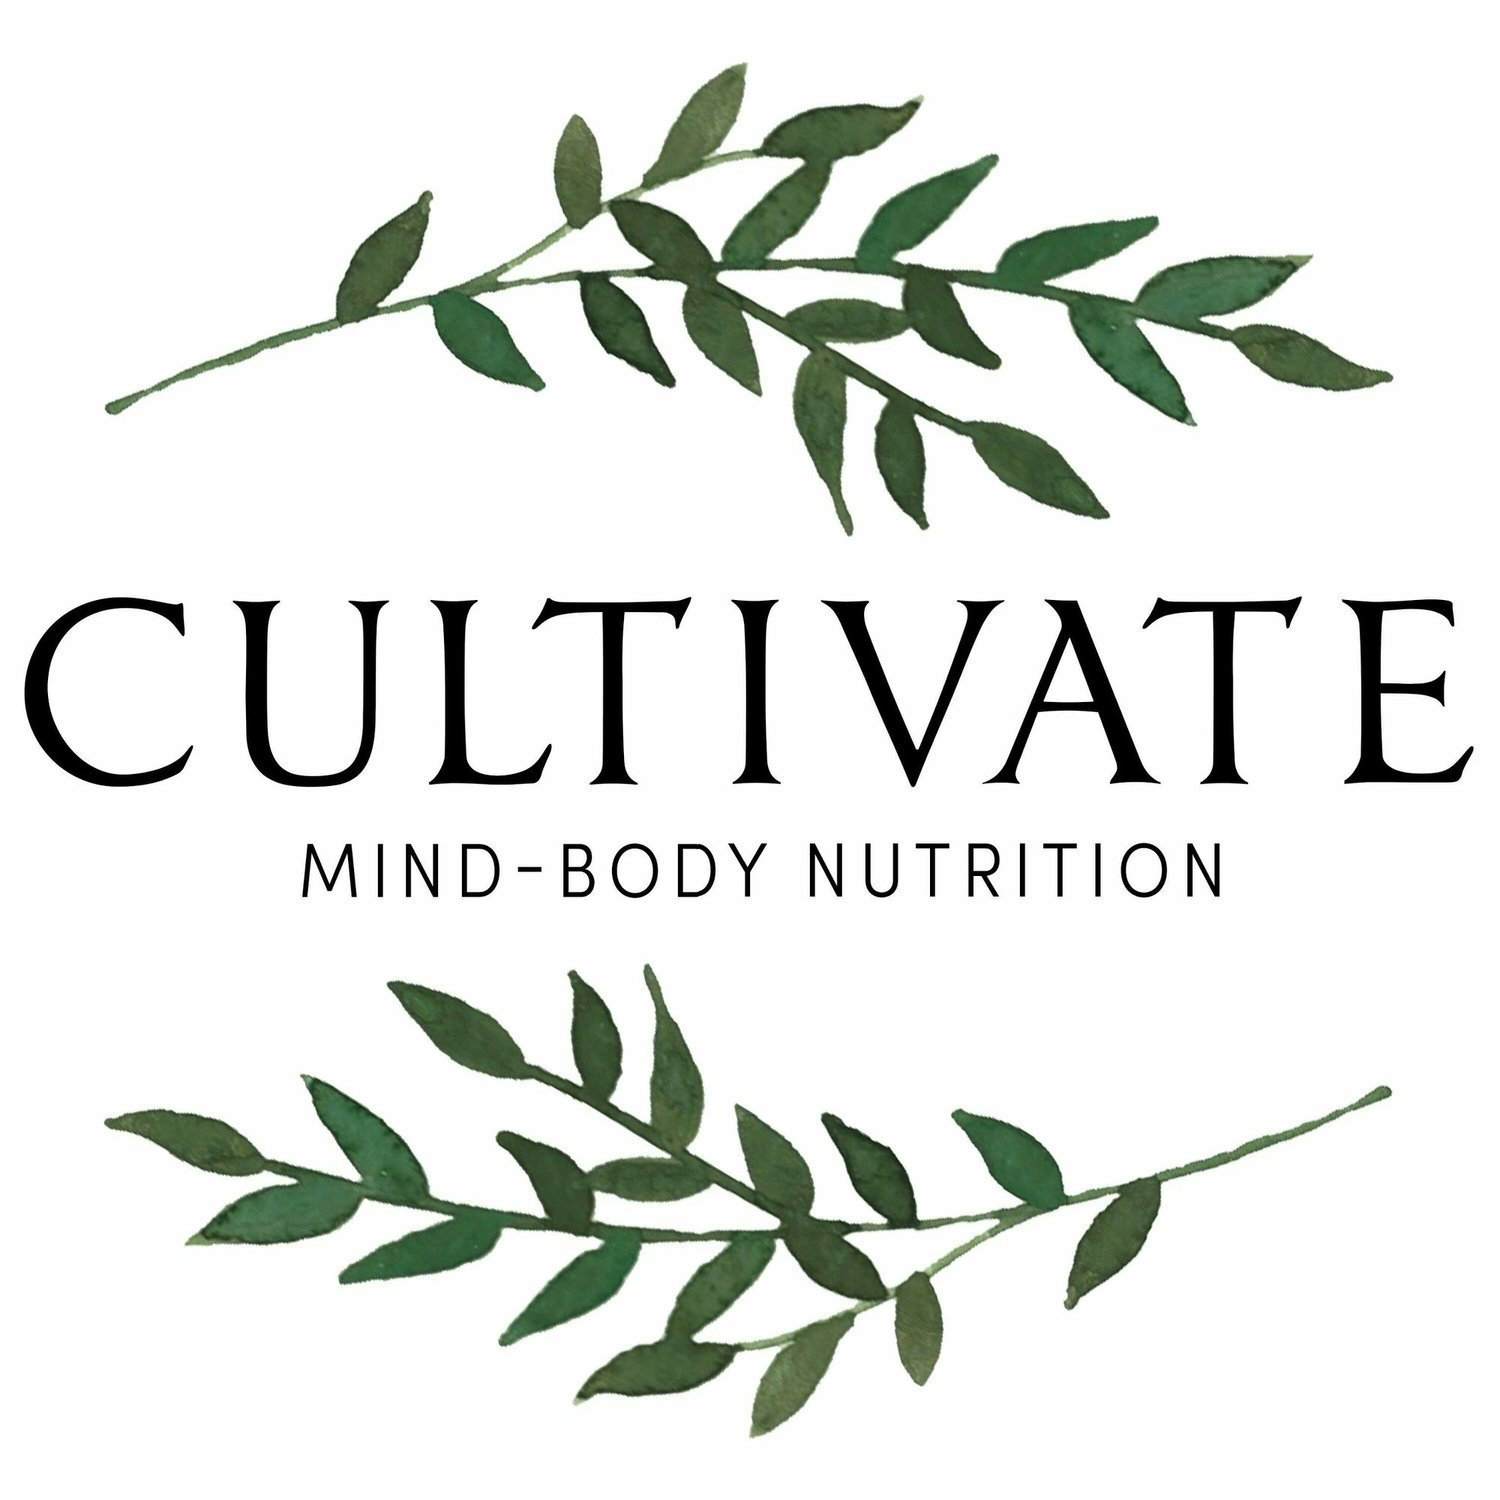 Cultivate: Mind-Body Nutrition